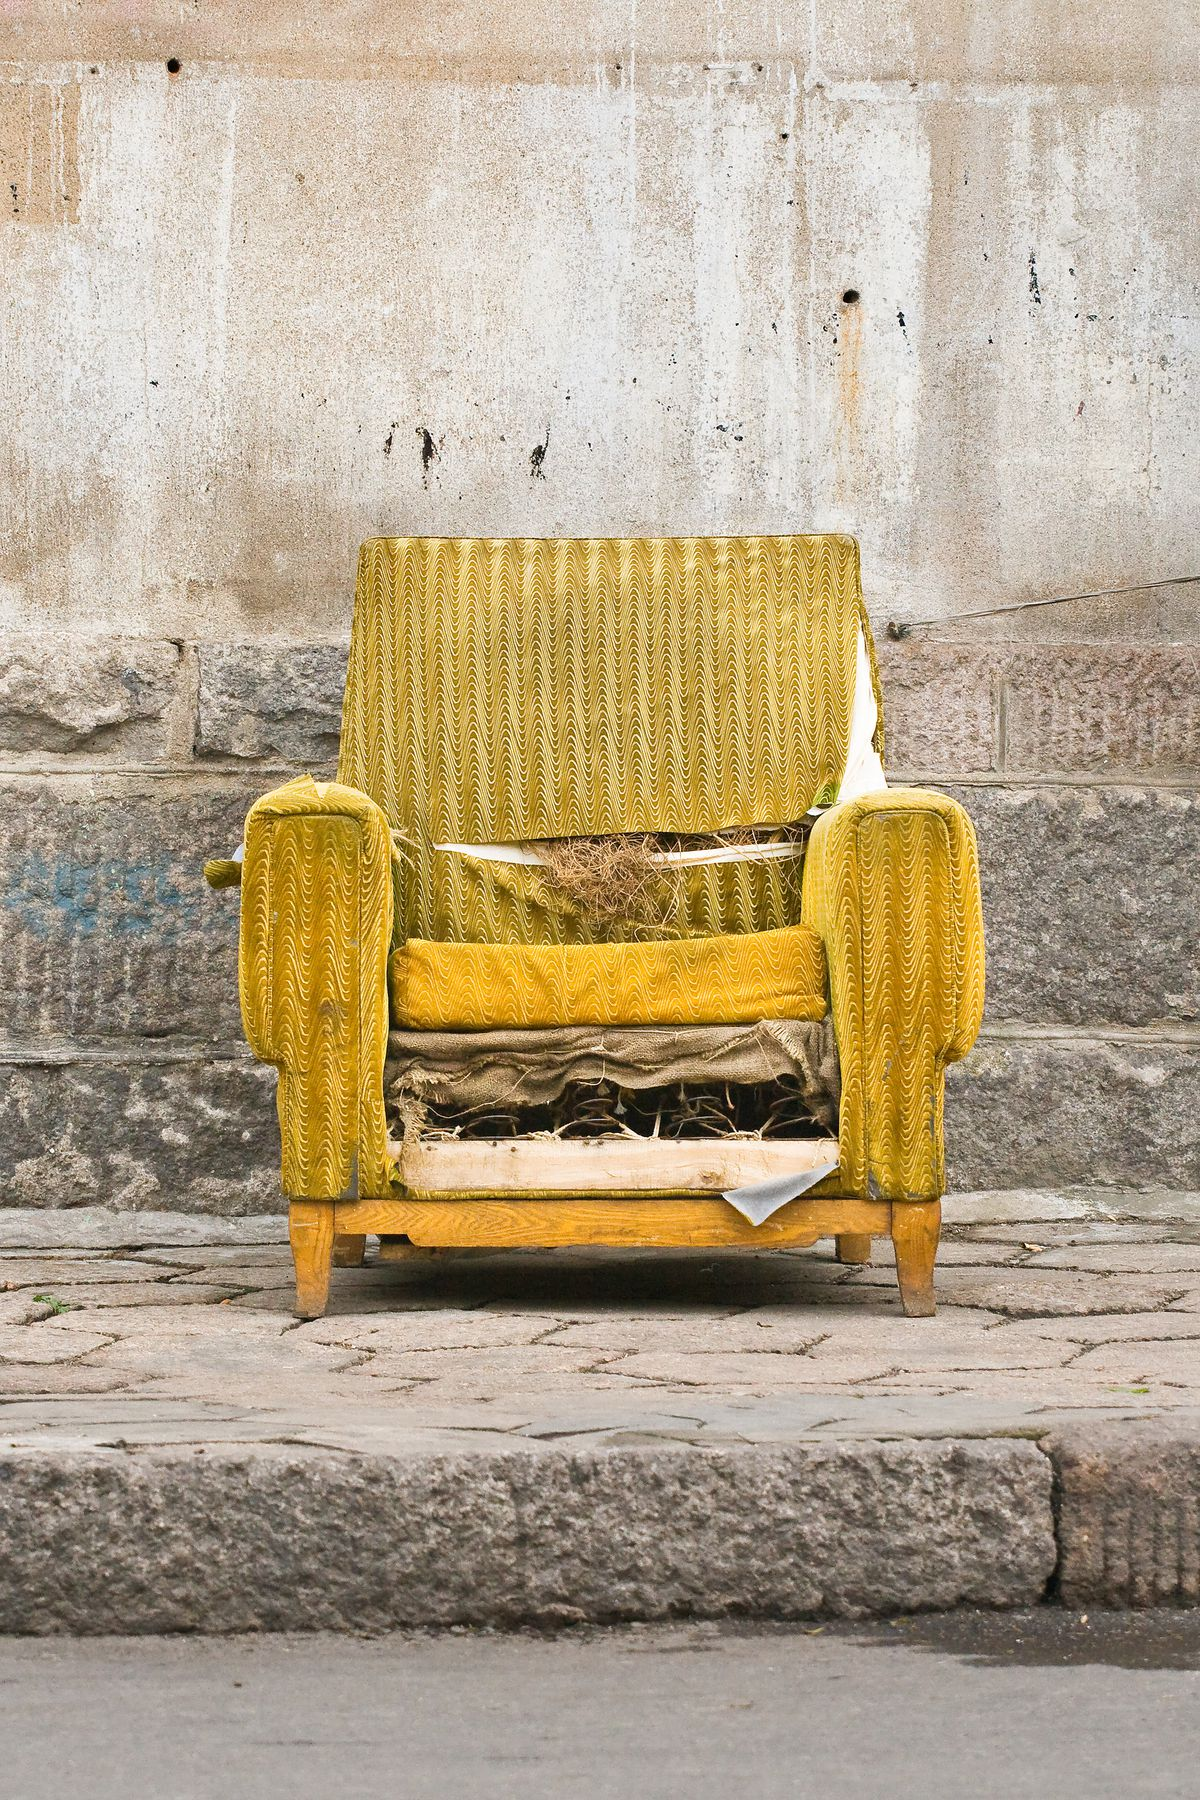 Photo of a ripped, broken, dirty armchair on a concrete sidewalk in front of a concrete wall.